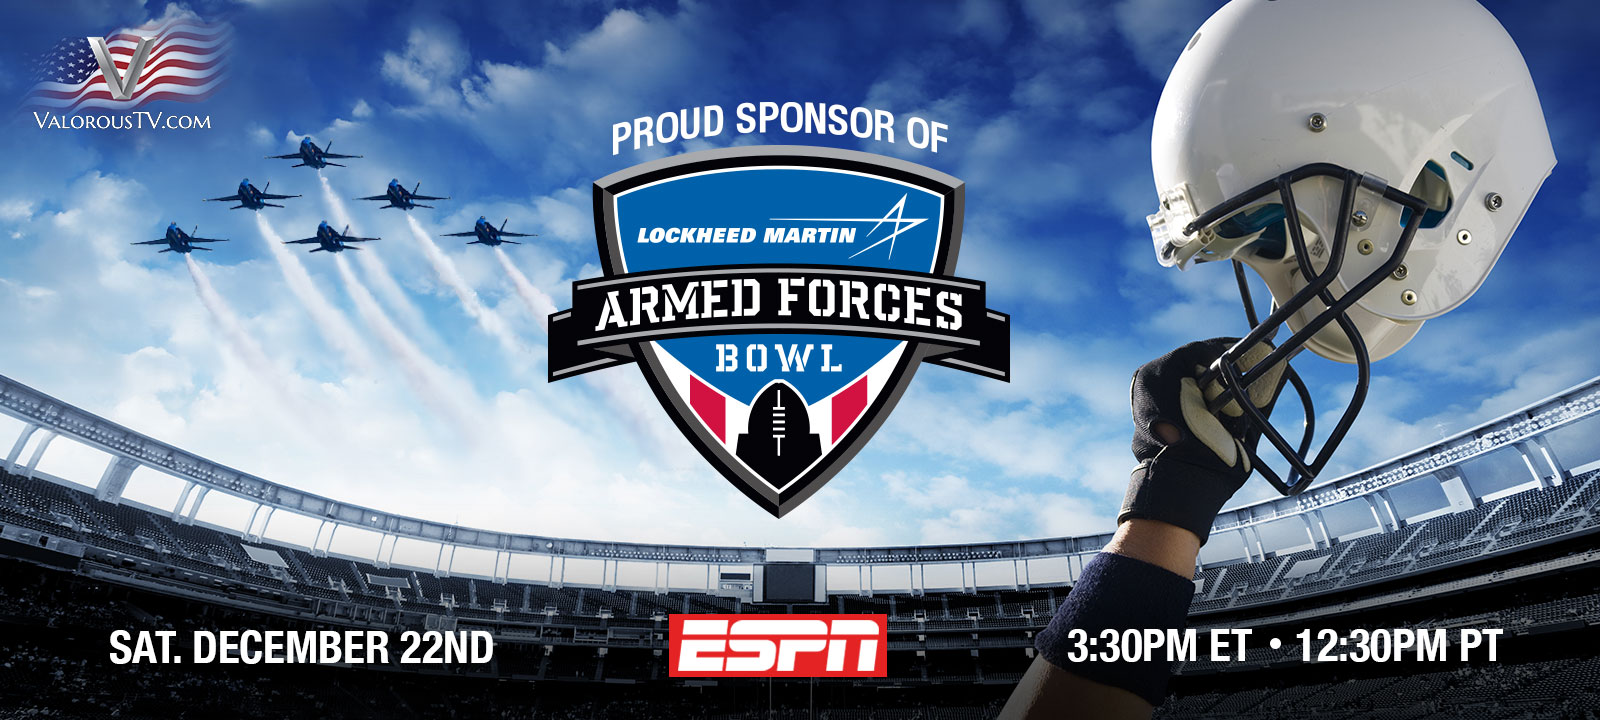 Lockheed Martin Armed Forces Bowl on ESPN